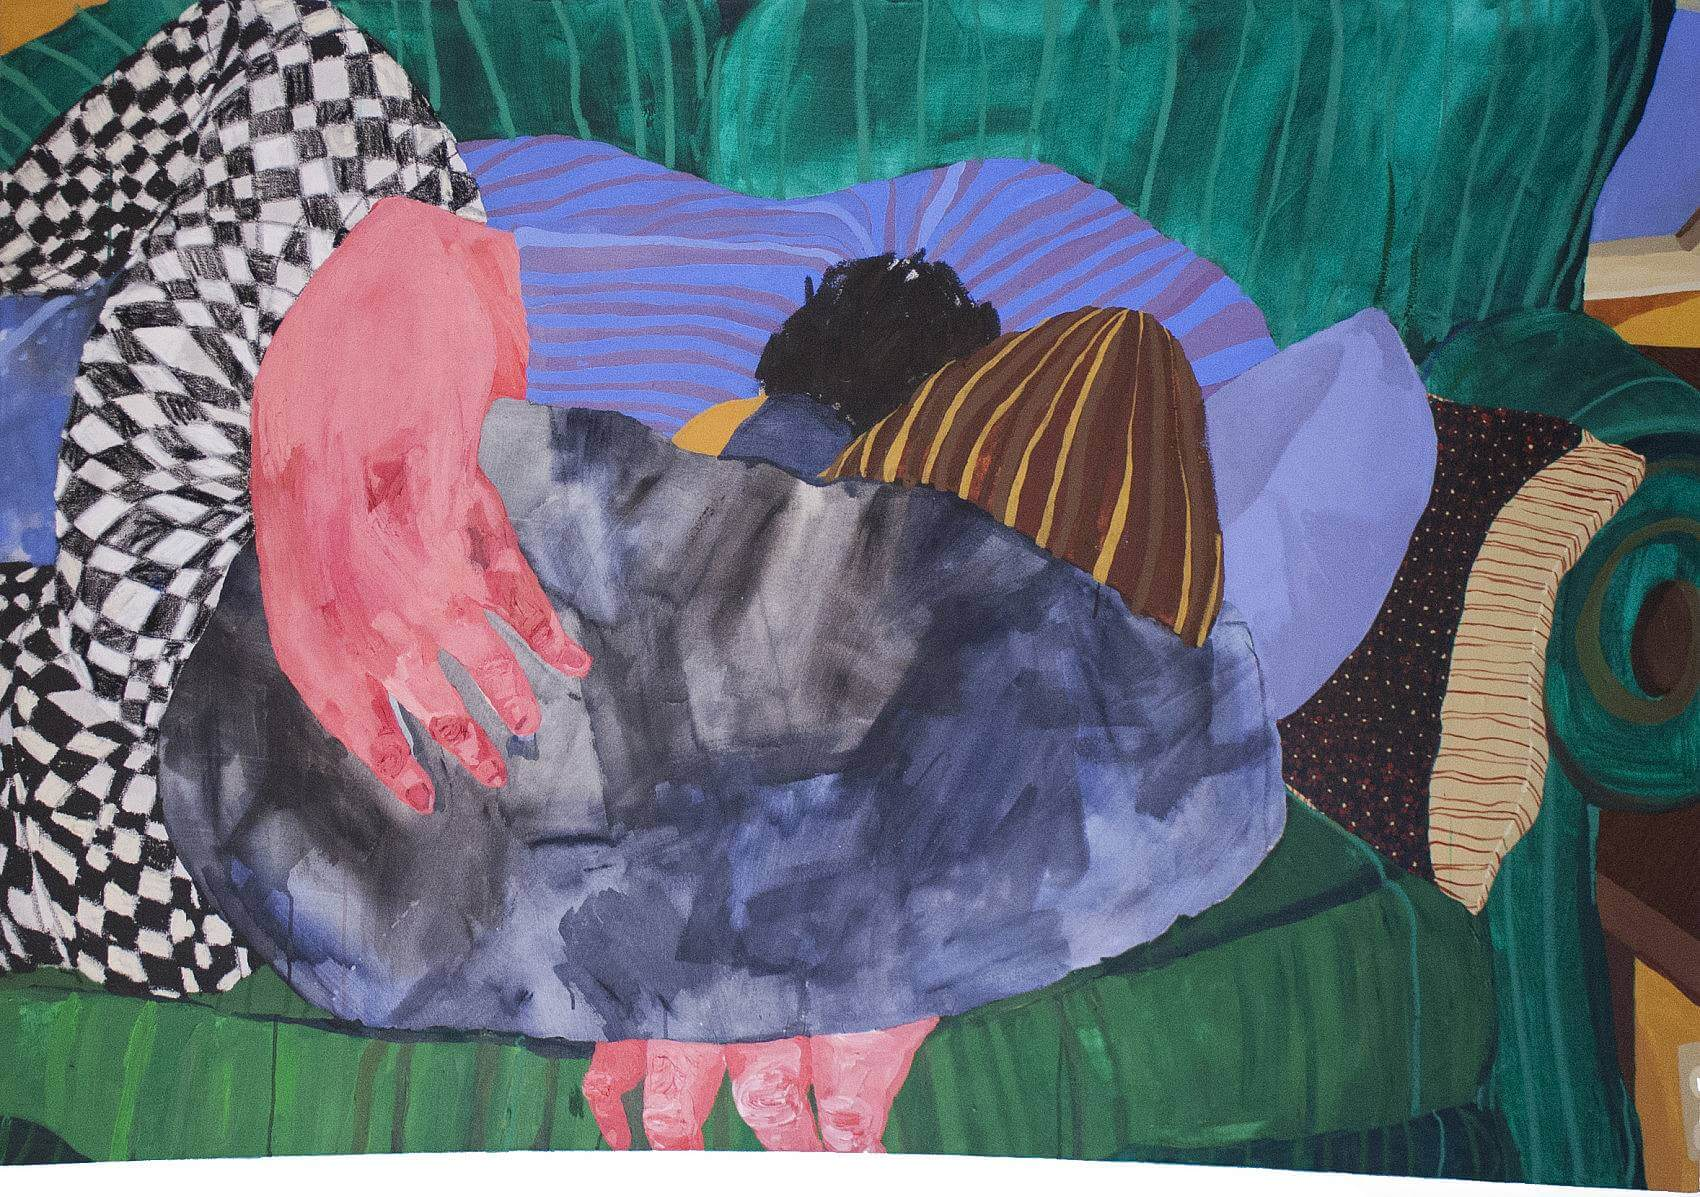 Sleeping Together, 2015